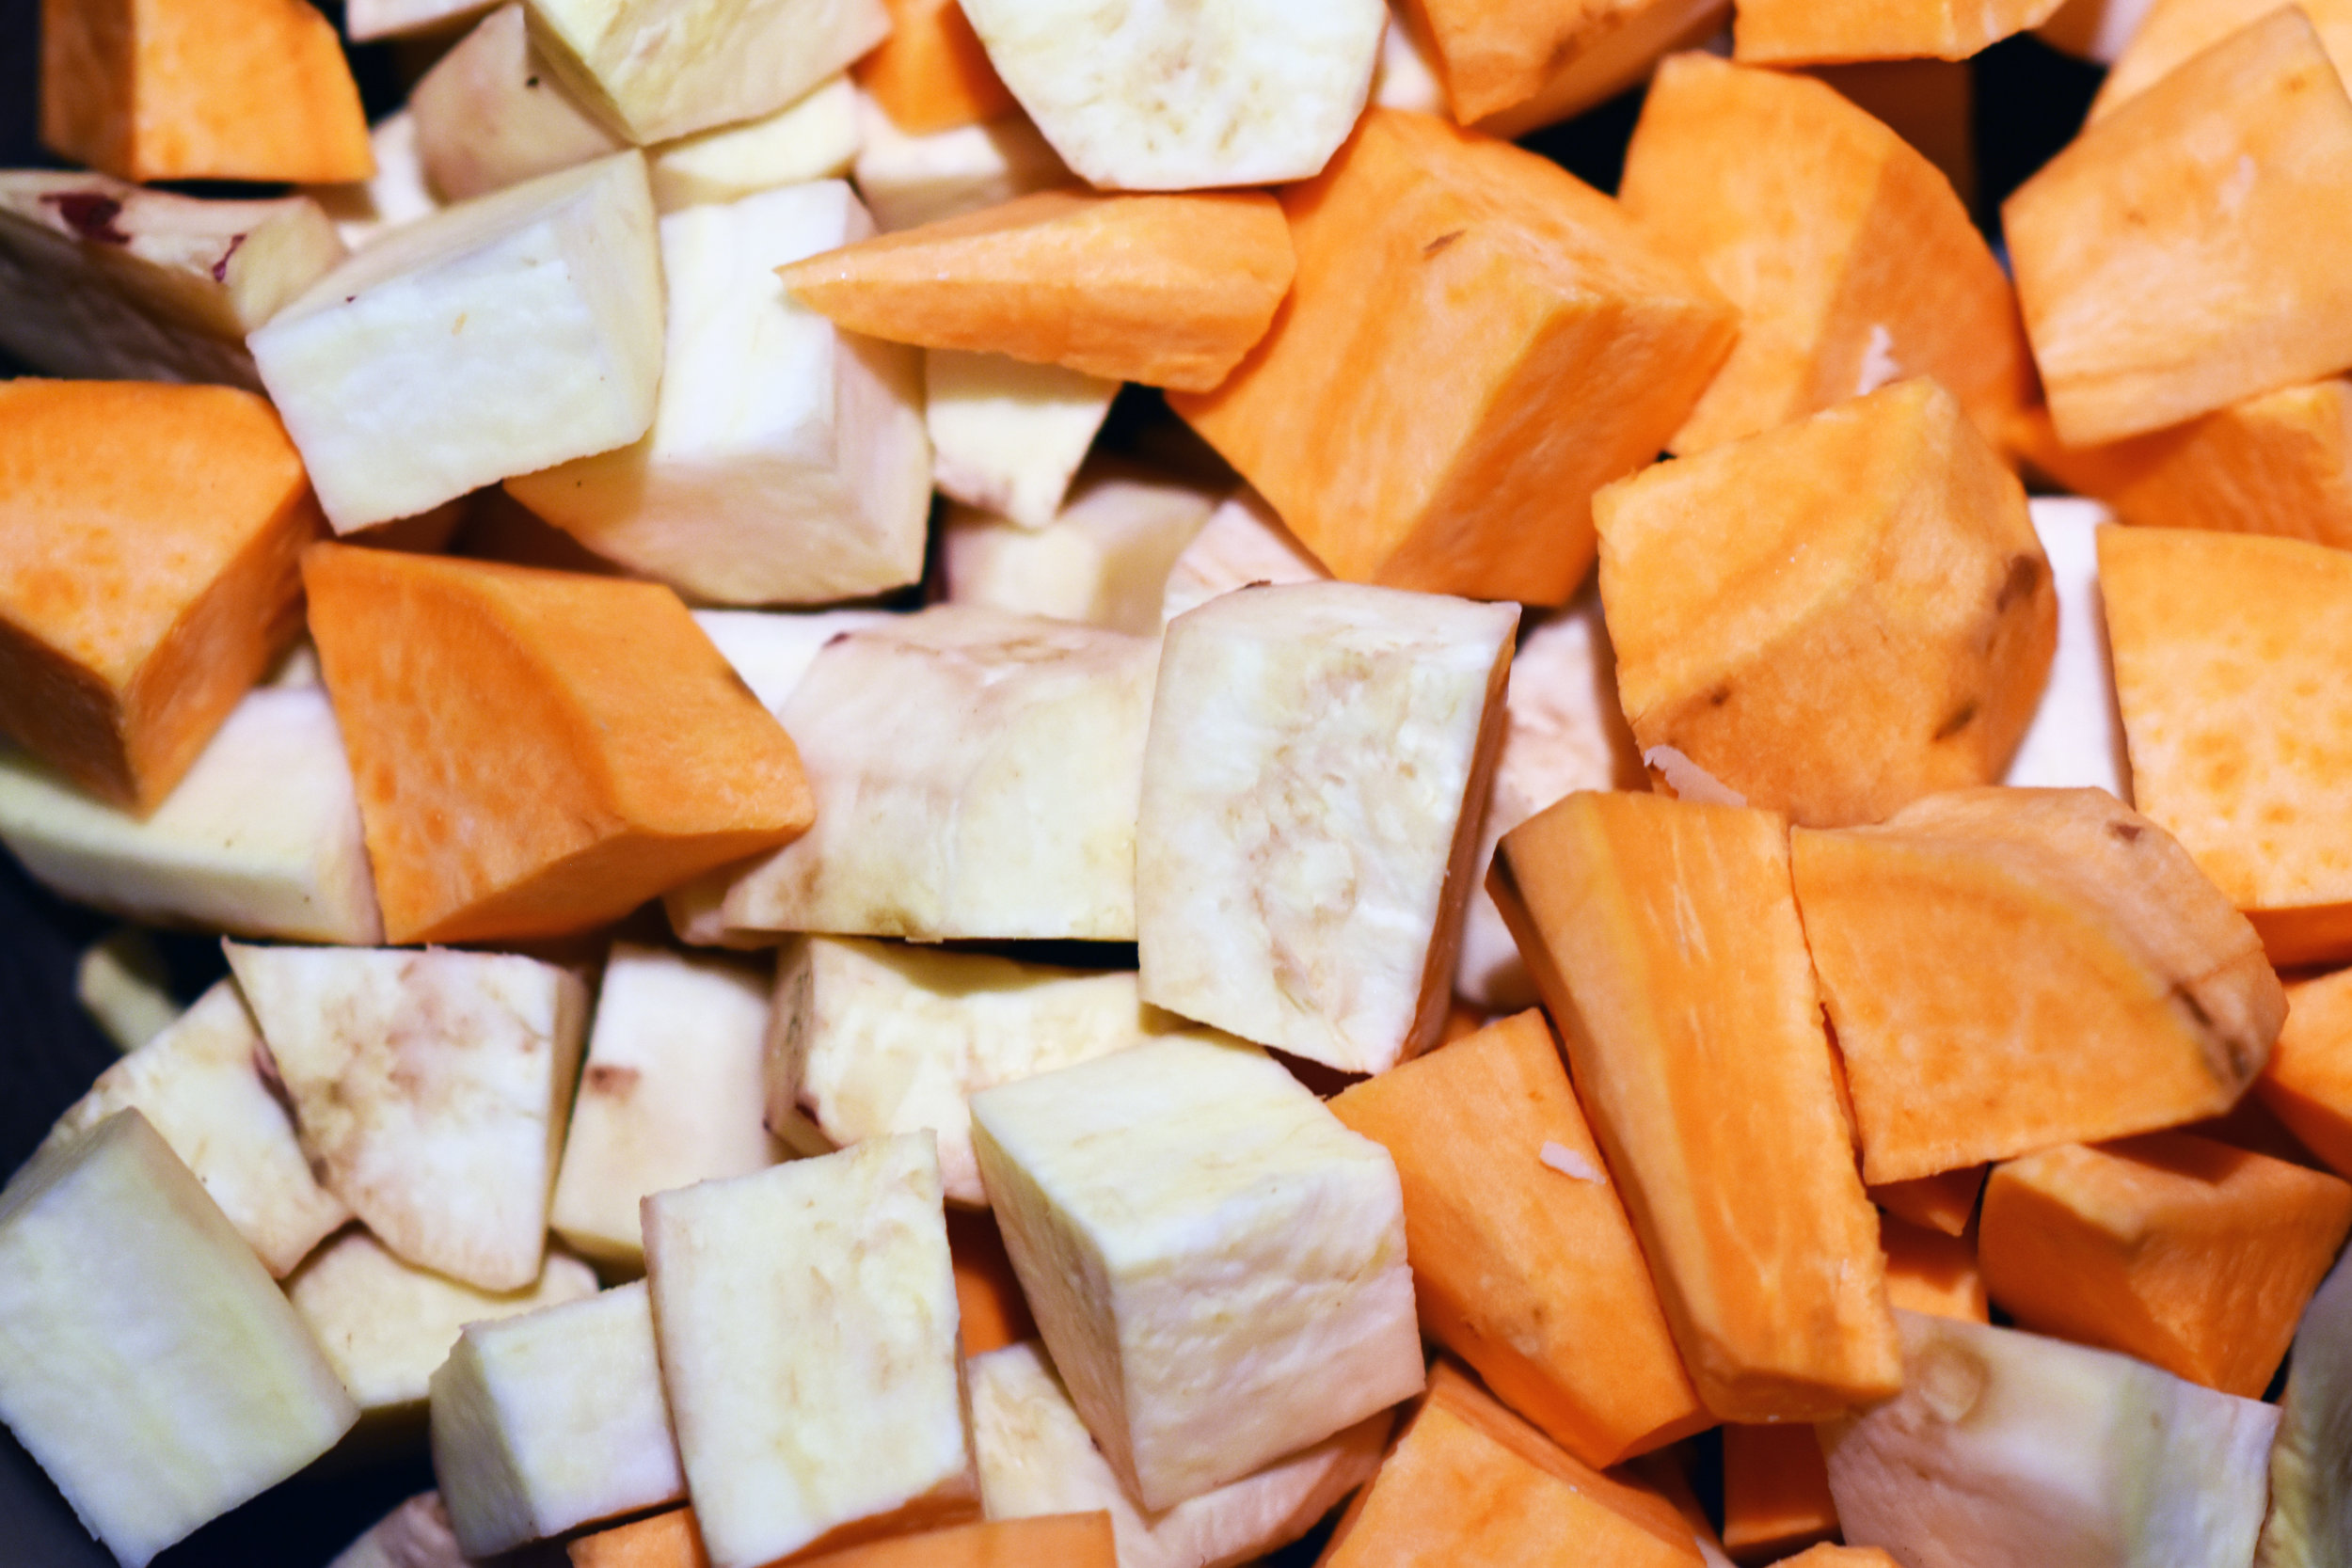 cubed sweet potatoes - i use a variety because diversity. use what you've got.